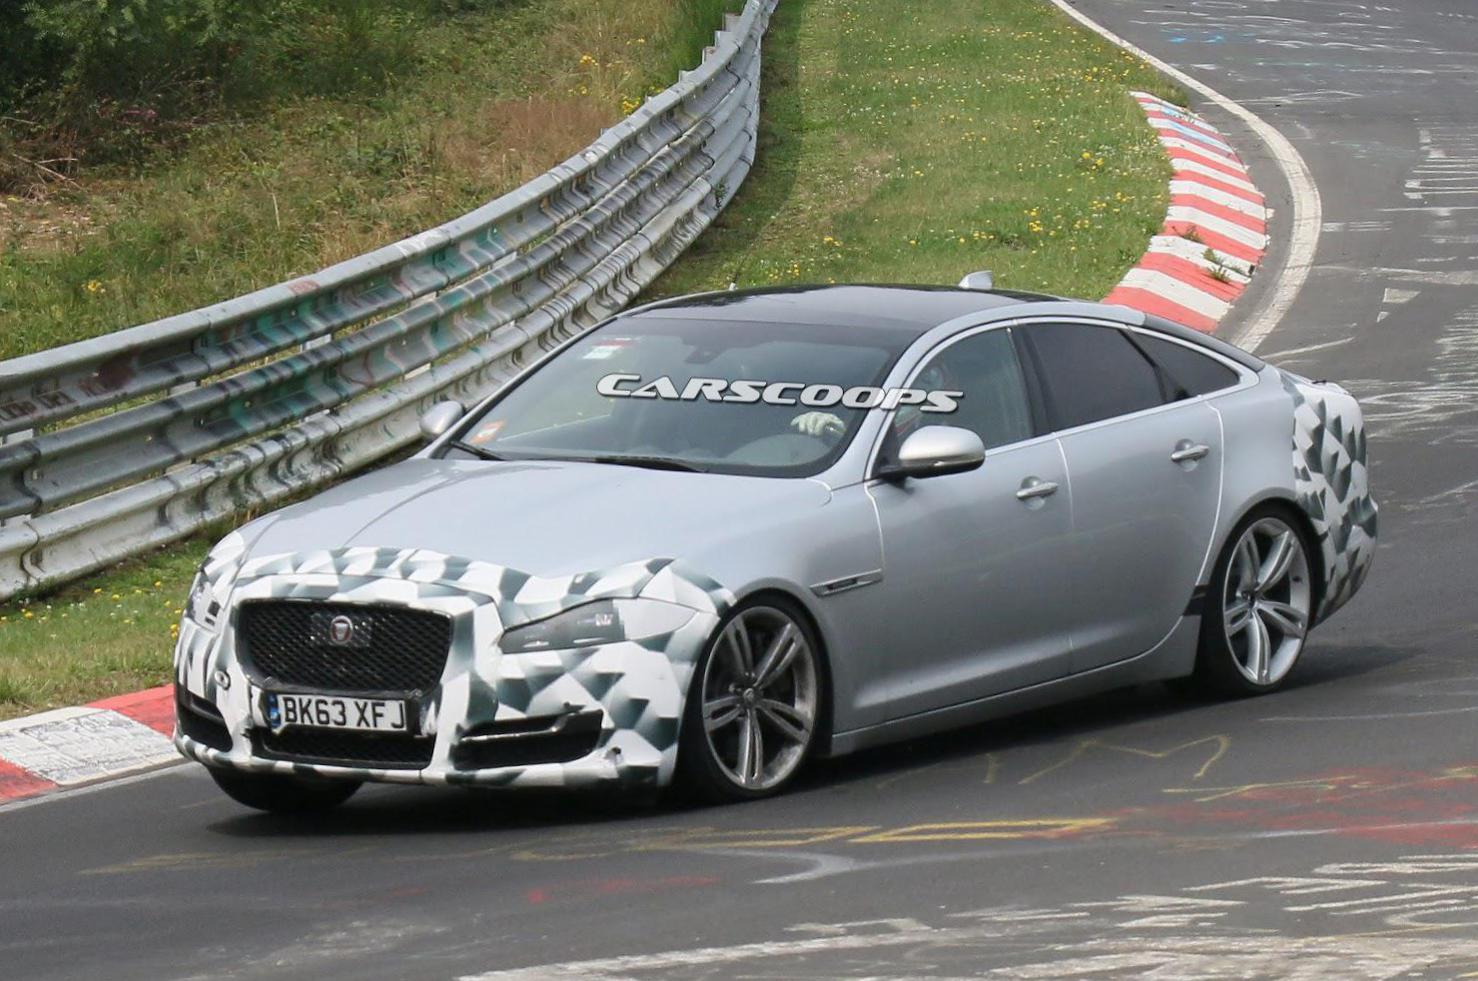 XJ Jaguar new 2013